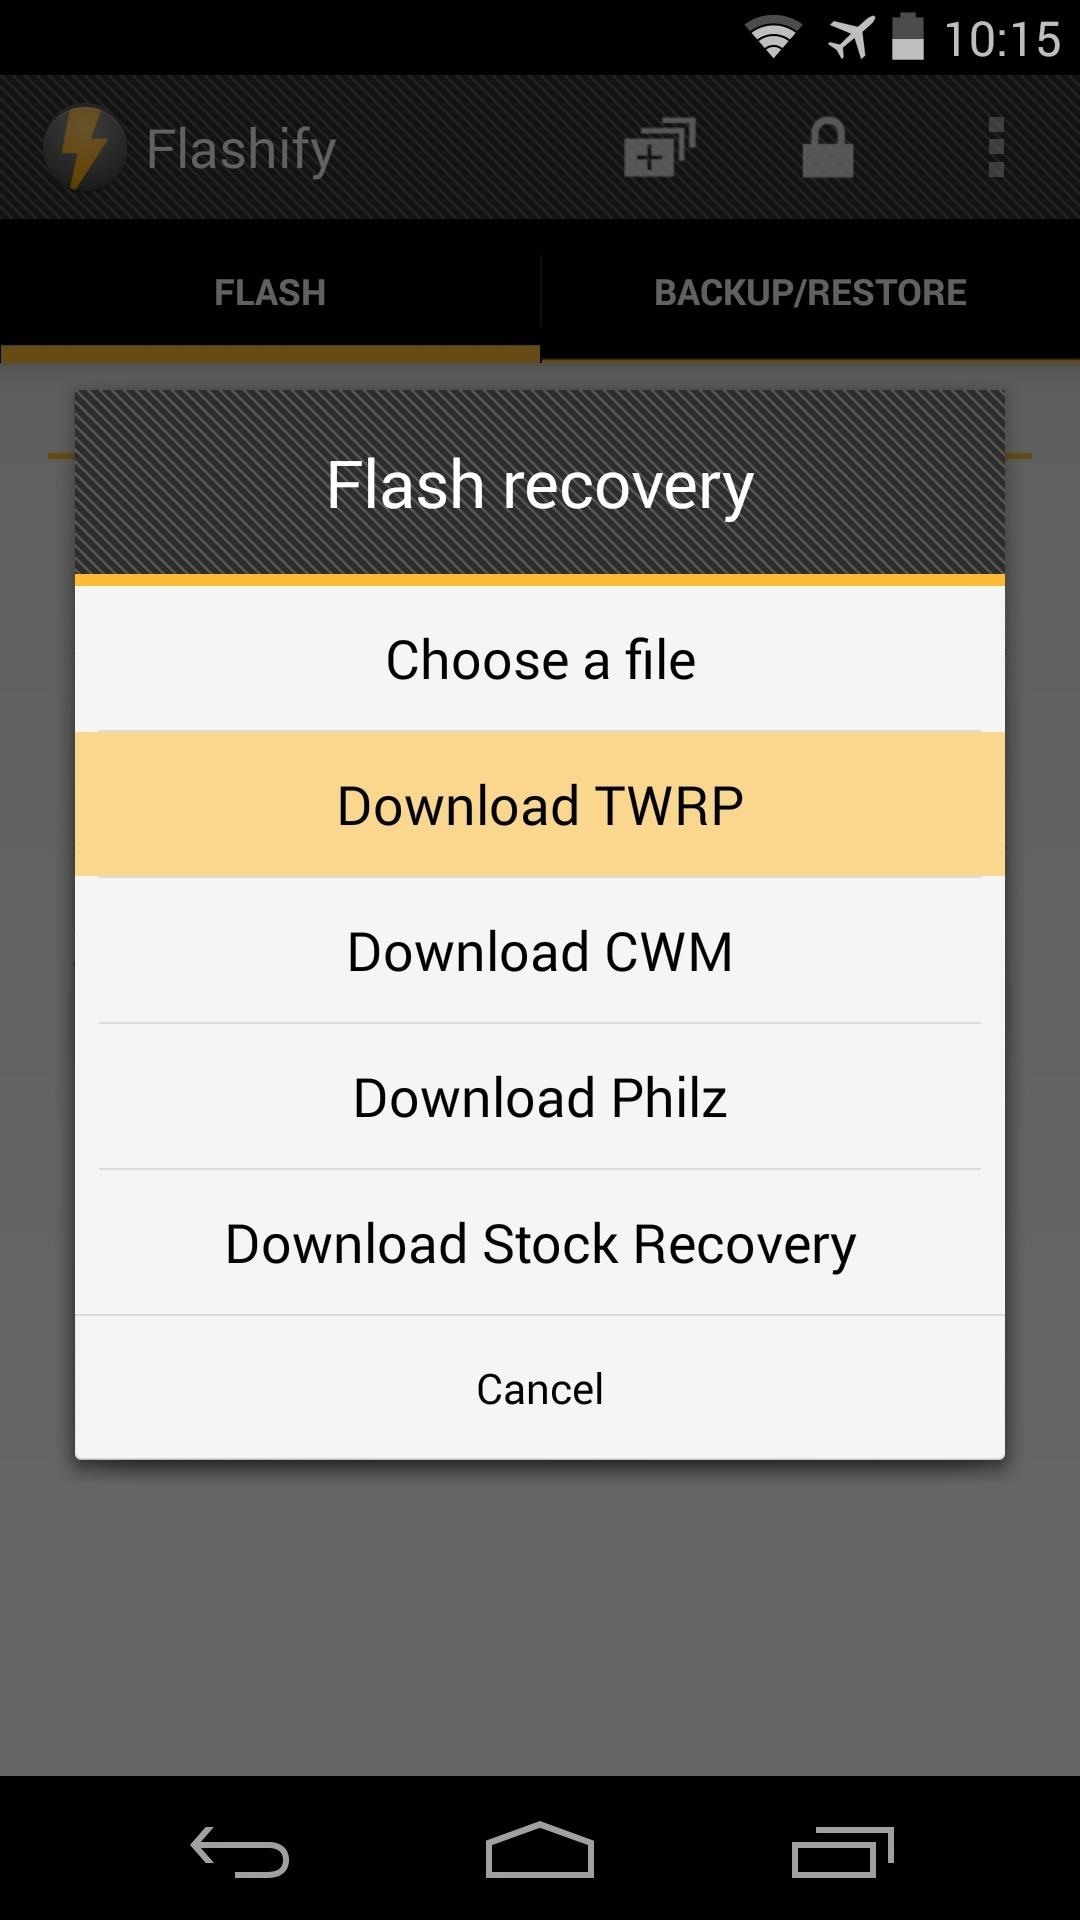 How to Install a Custom Recovery on Your Nexus Without Using a Computer